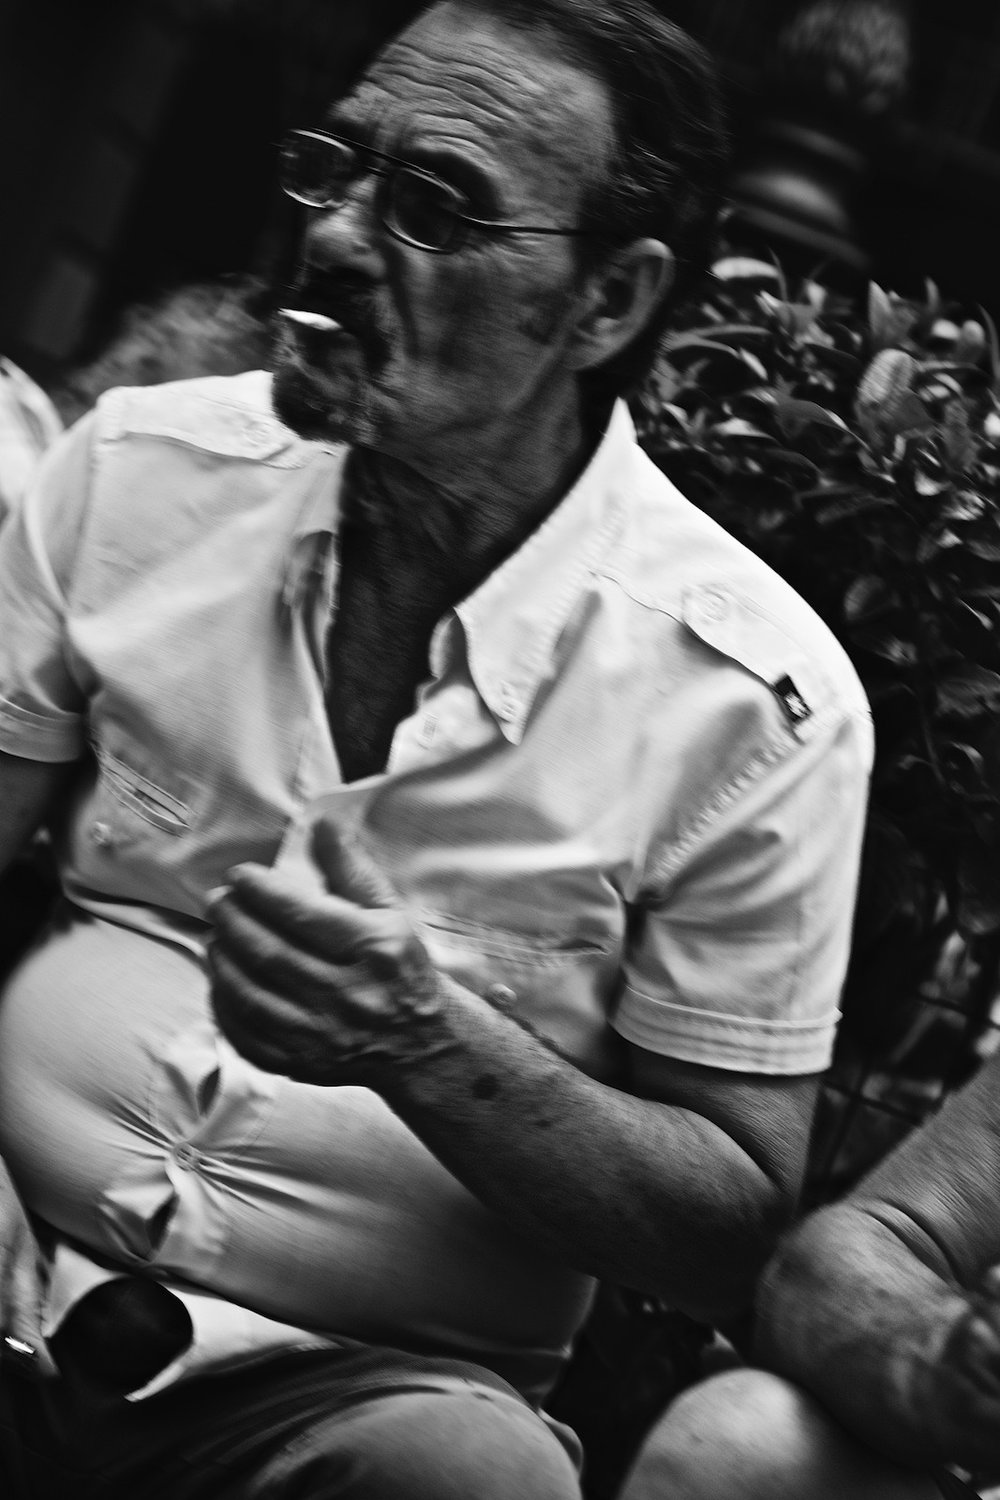 faces-of-napoli-denis-bosnic-photography-naples-bw-spaccanapoli-summer-37.jpg